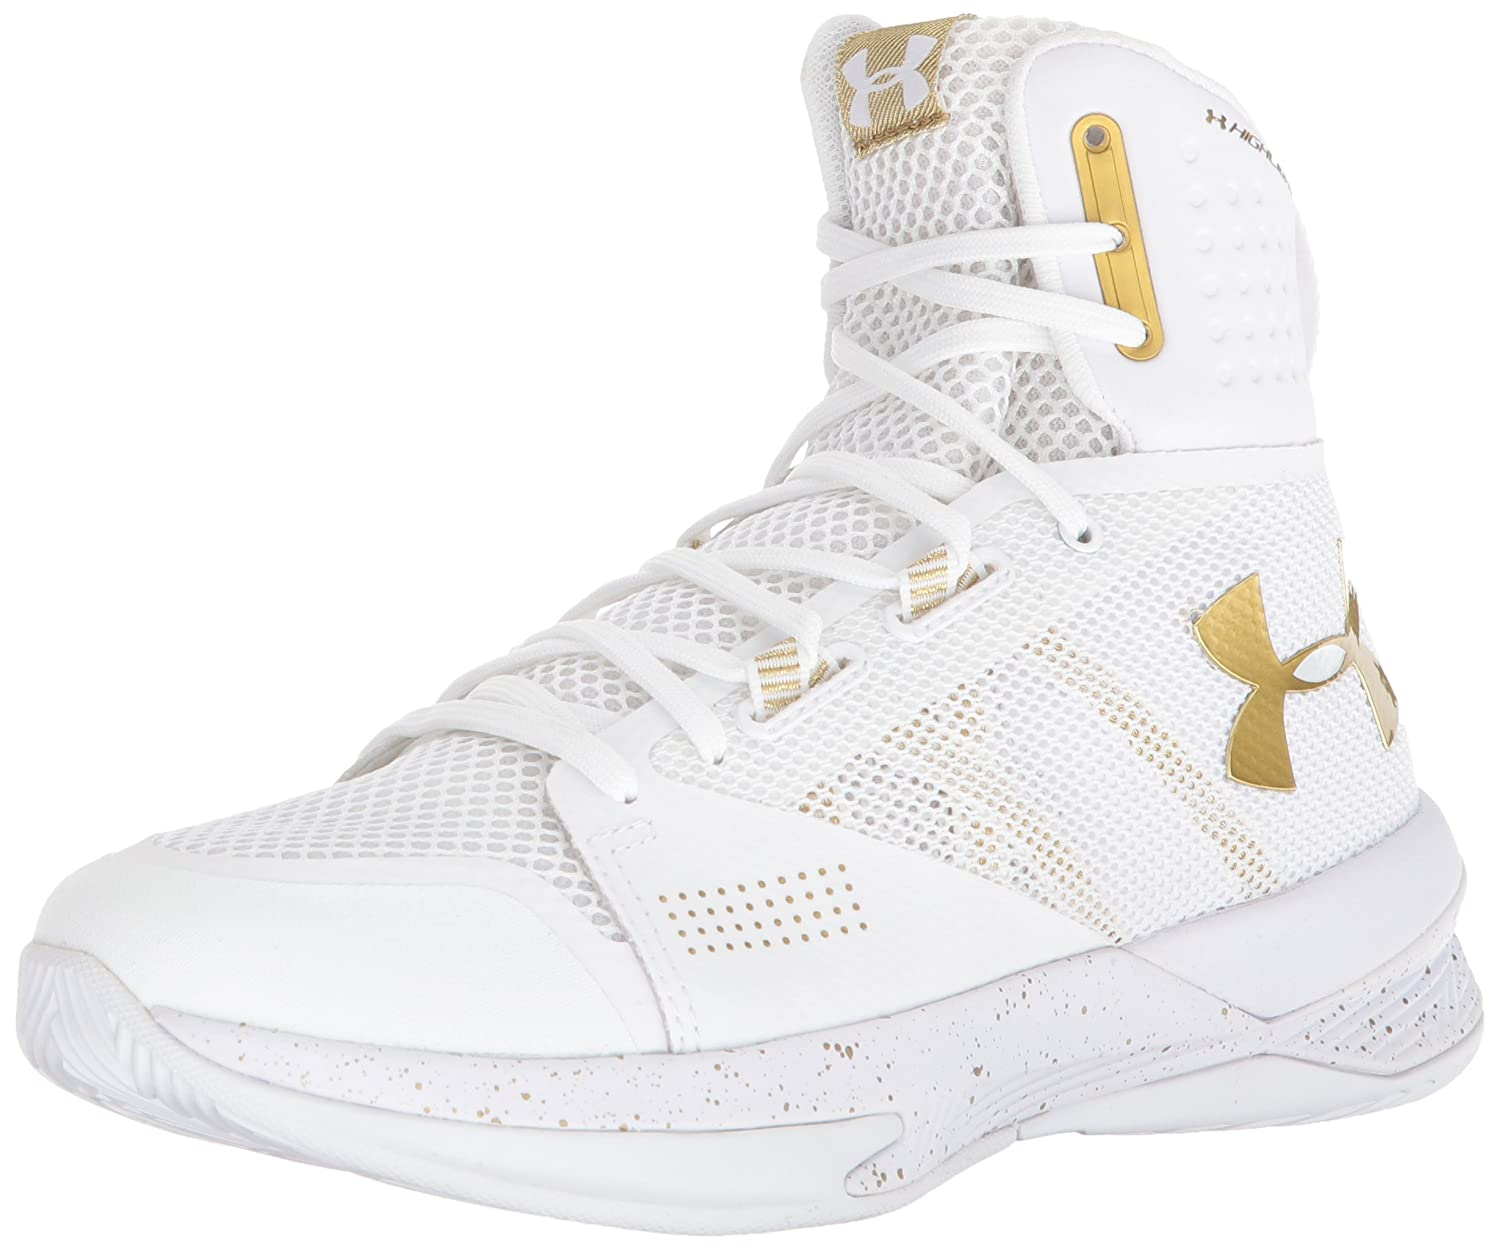 Under Armour1290205 - Highlight Ace Damen